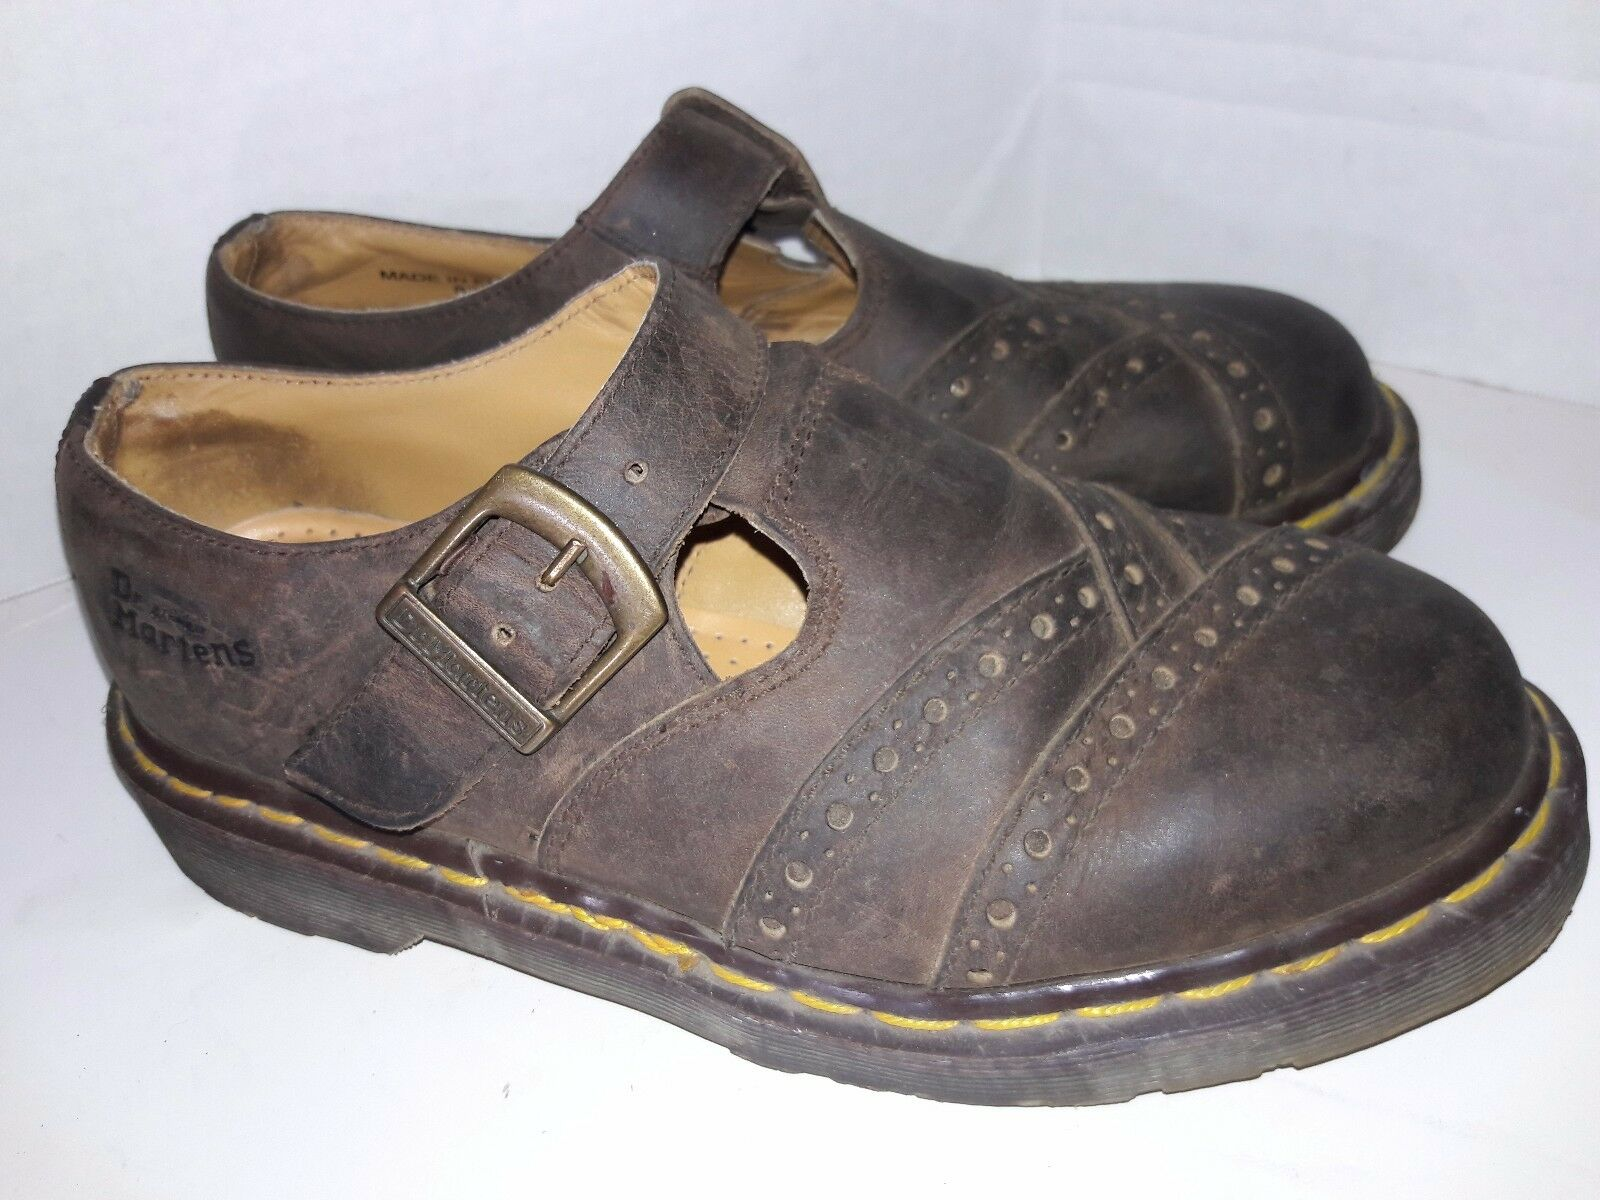 DR  MARTENS OXFORD SHOES BROWN LEATHER MARY JANES uk 5 Size 7.5